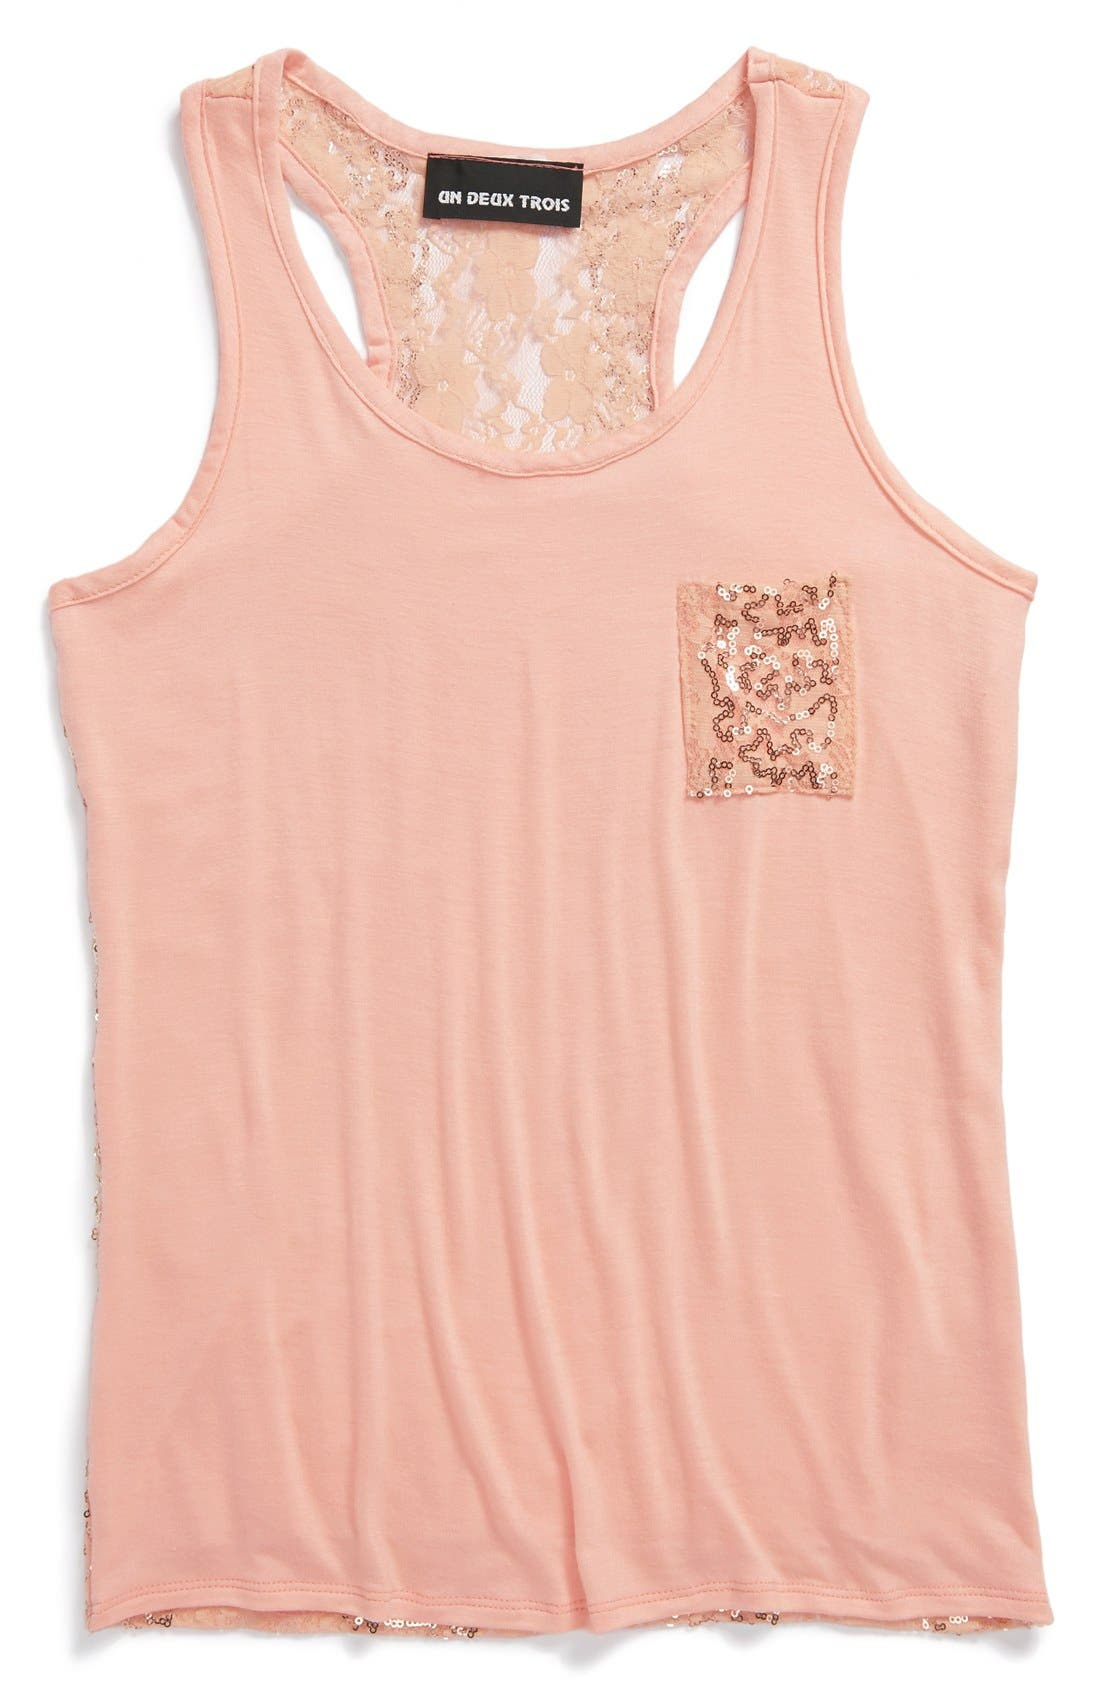 Main Image - Un Deux Trois Sequin Sleeveless Top (Big Girls)(Online Only)